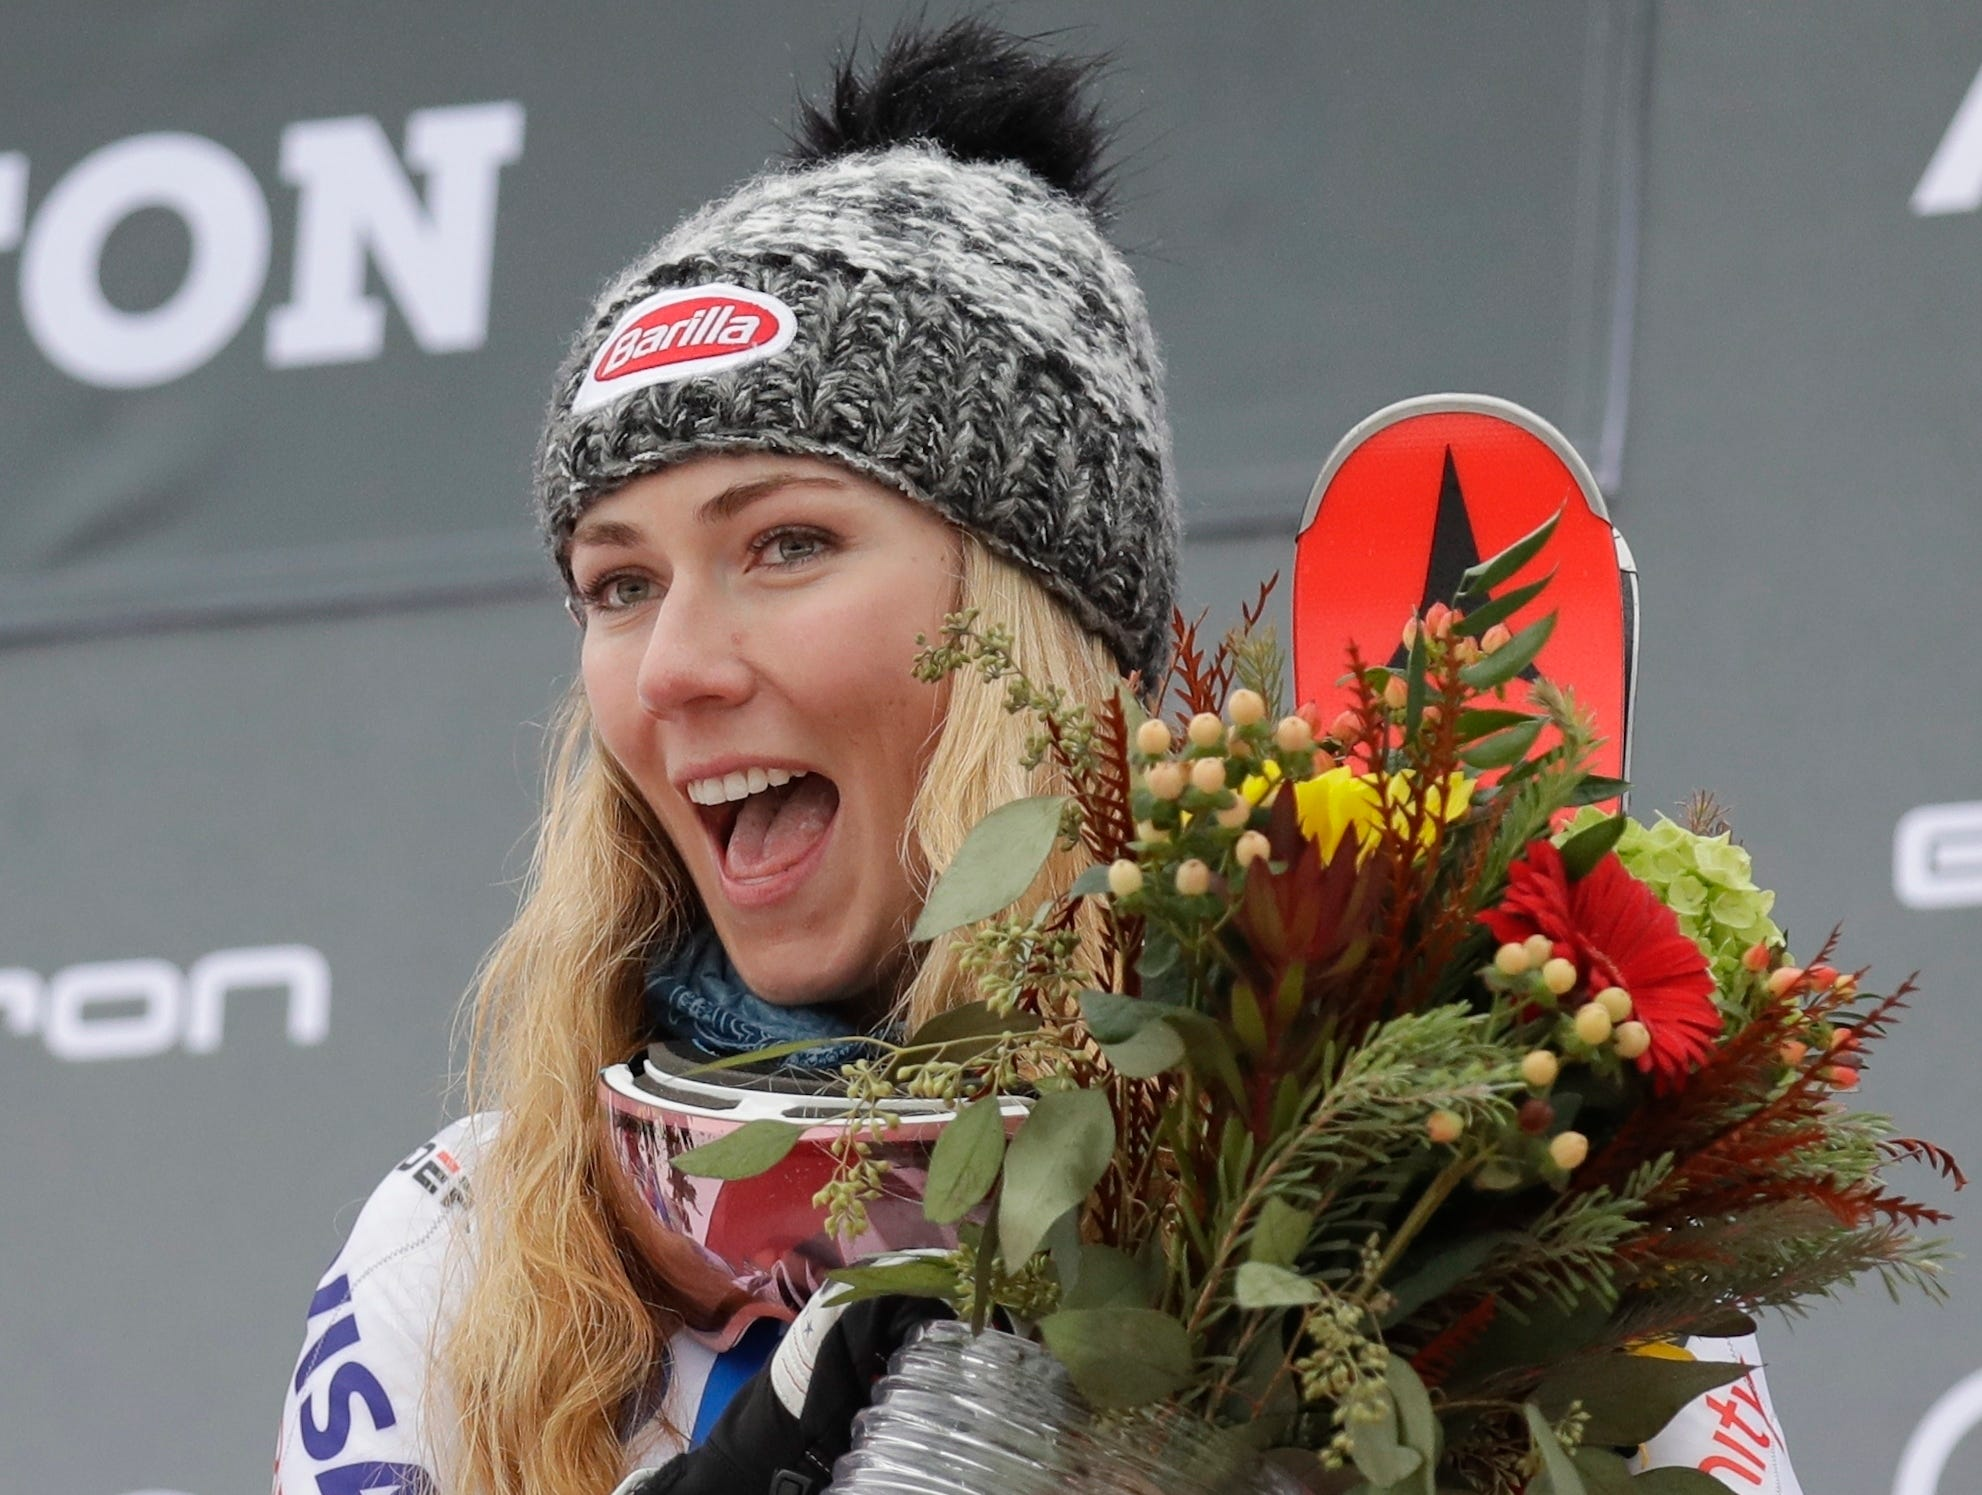 United States' Mikaela Shiffrin celebrates on the podiumafter winning the alpine ski, women's World Cup slalom in Killington, Vt., Sunday, Nov. 25, 2018.